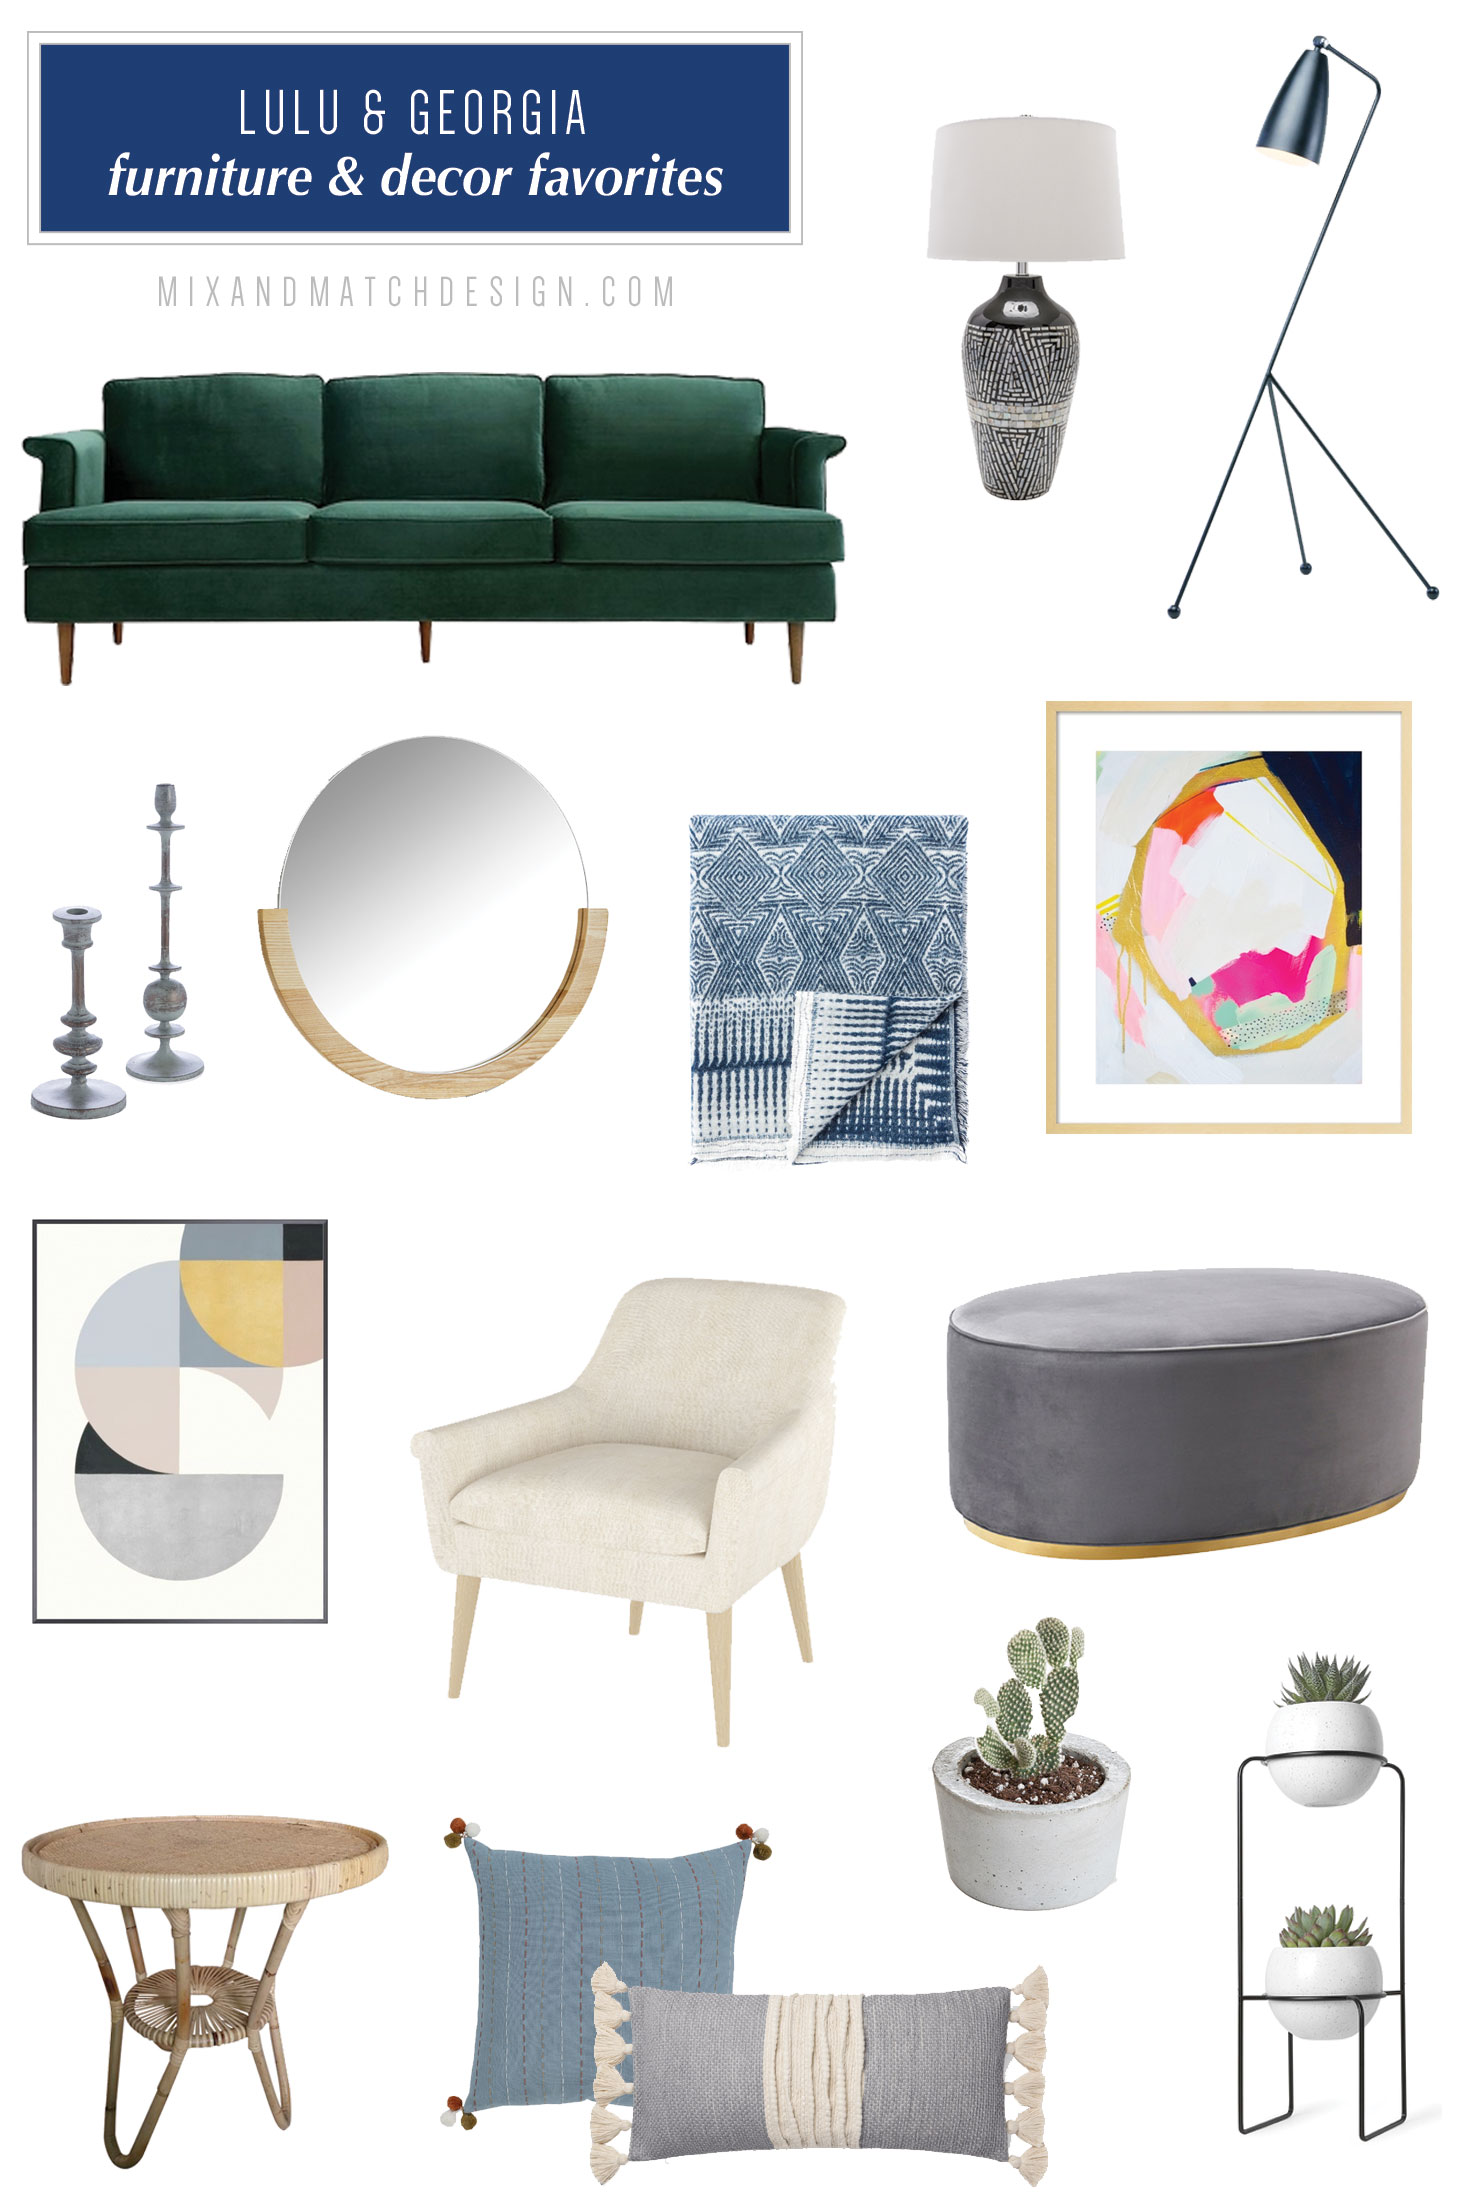 Lulu & Georgia is one of my favorite places to shop for modern, coastal, and eclectic furniture and decor, and I've rounded up a bunch of my favorites from their rug collection to share with you! They have an amazing selection. // #designerfinds #interiordesign #decor #eclecticdecor